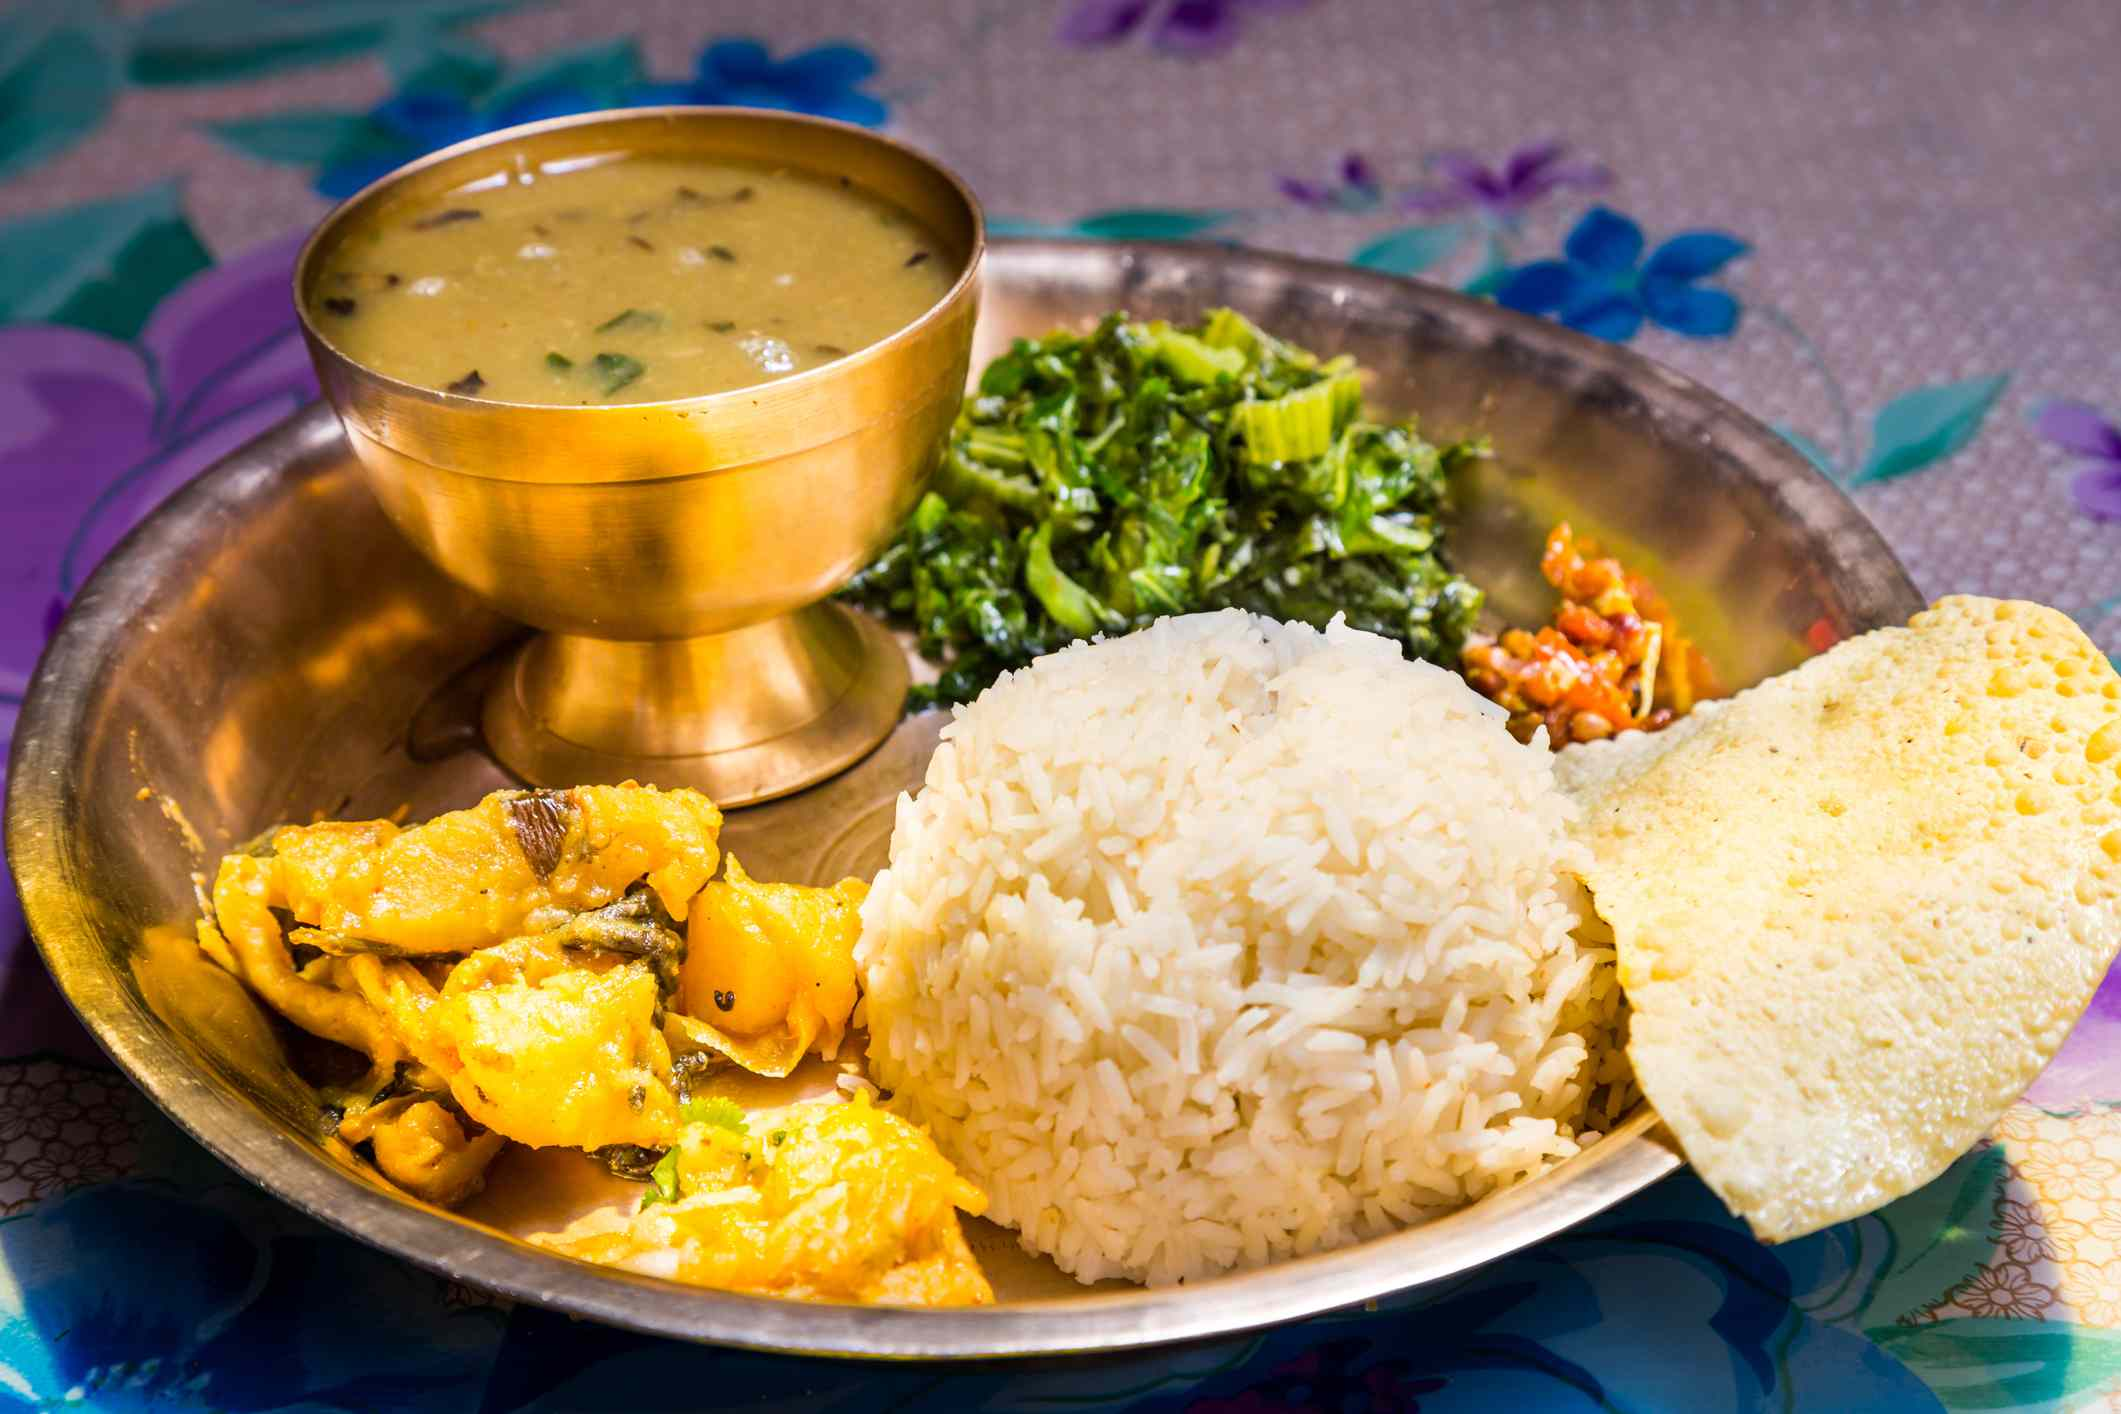 platter of food with potato curry, rice, papad, green vegetable and brass bowl of soup